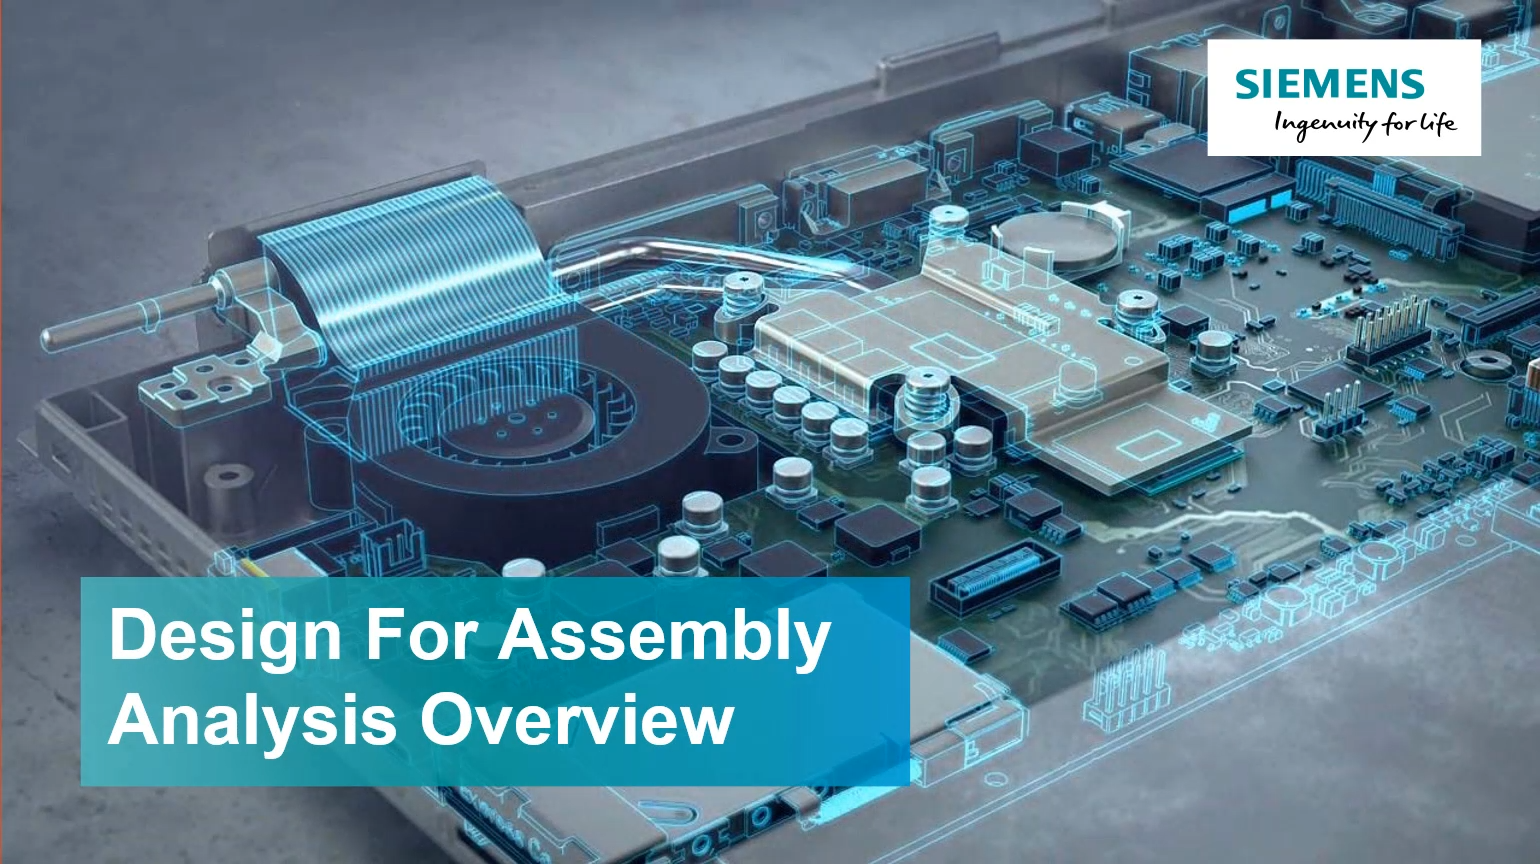 Design for Assembly Analysis Overview cover image